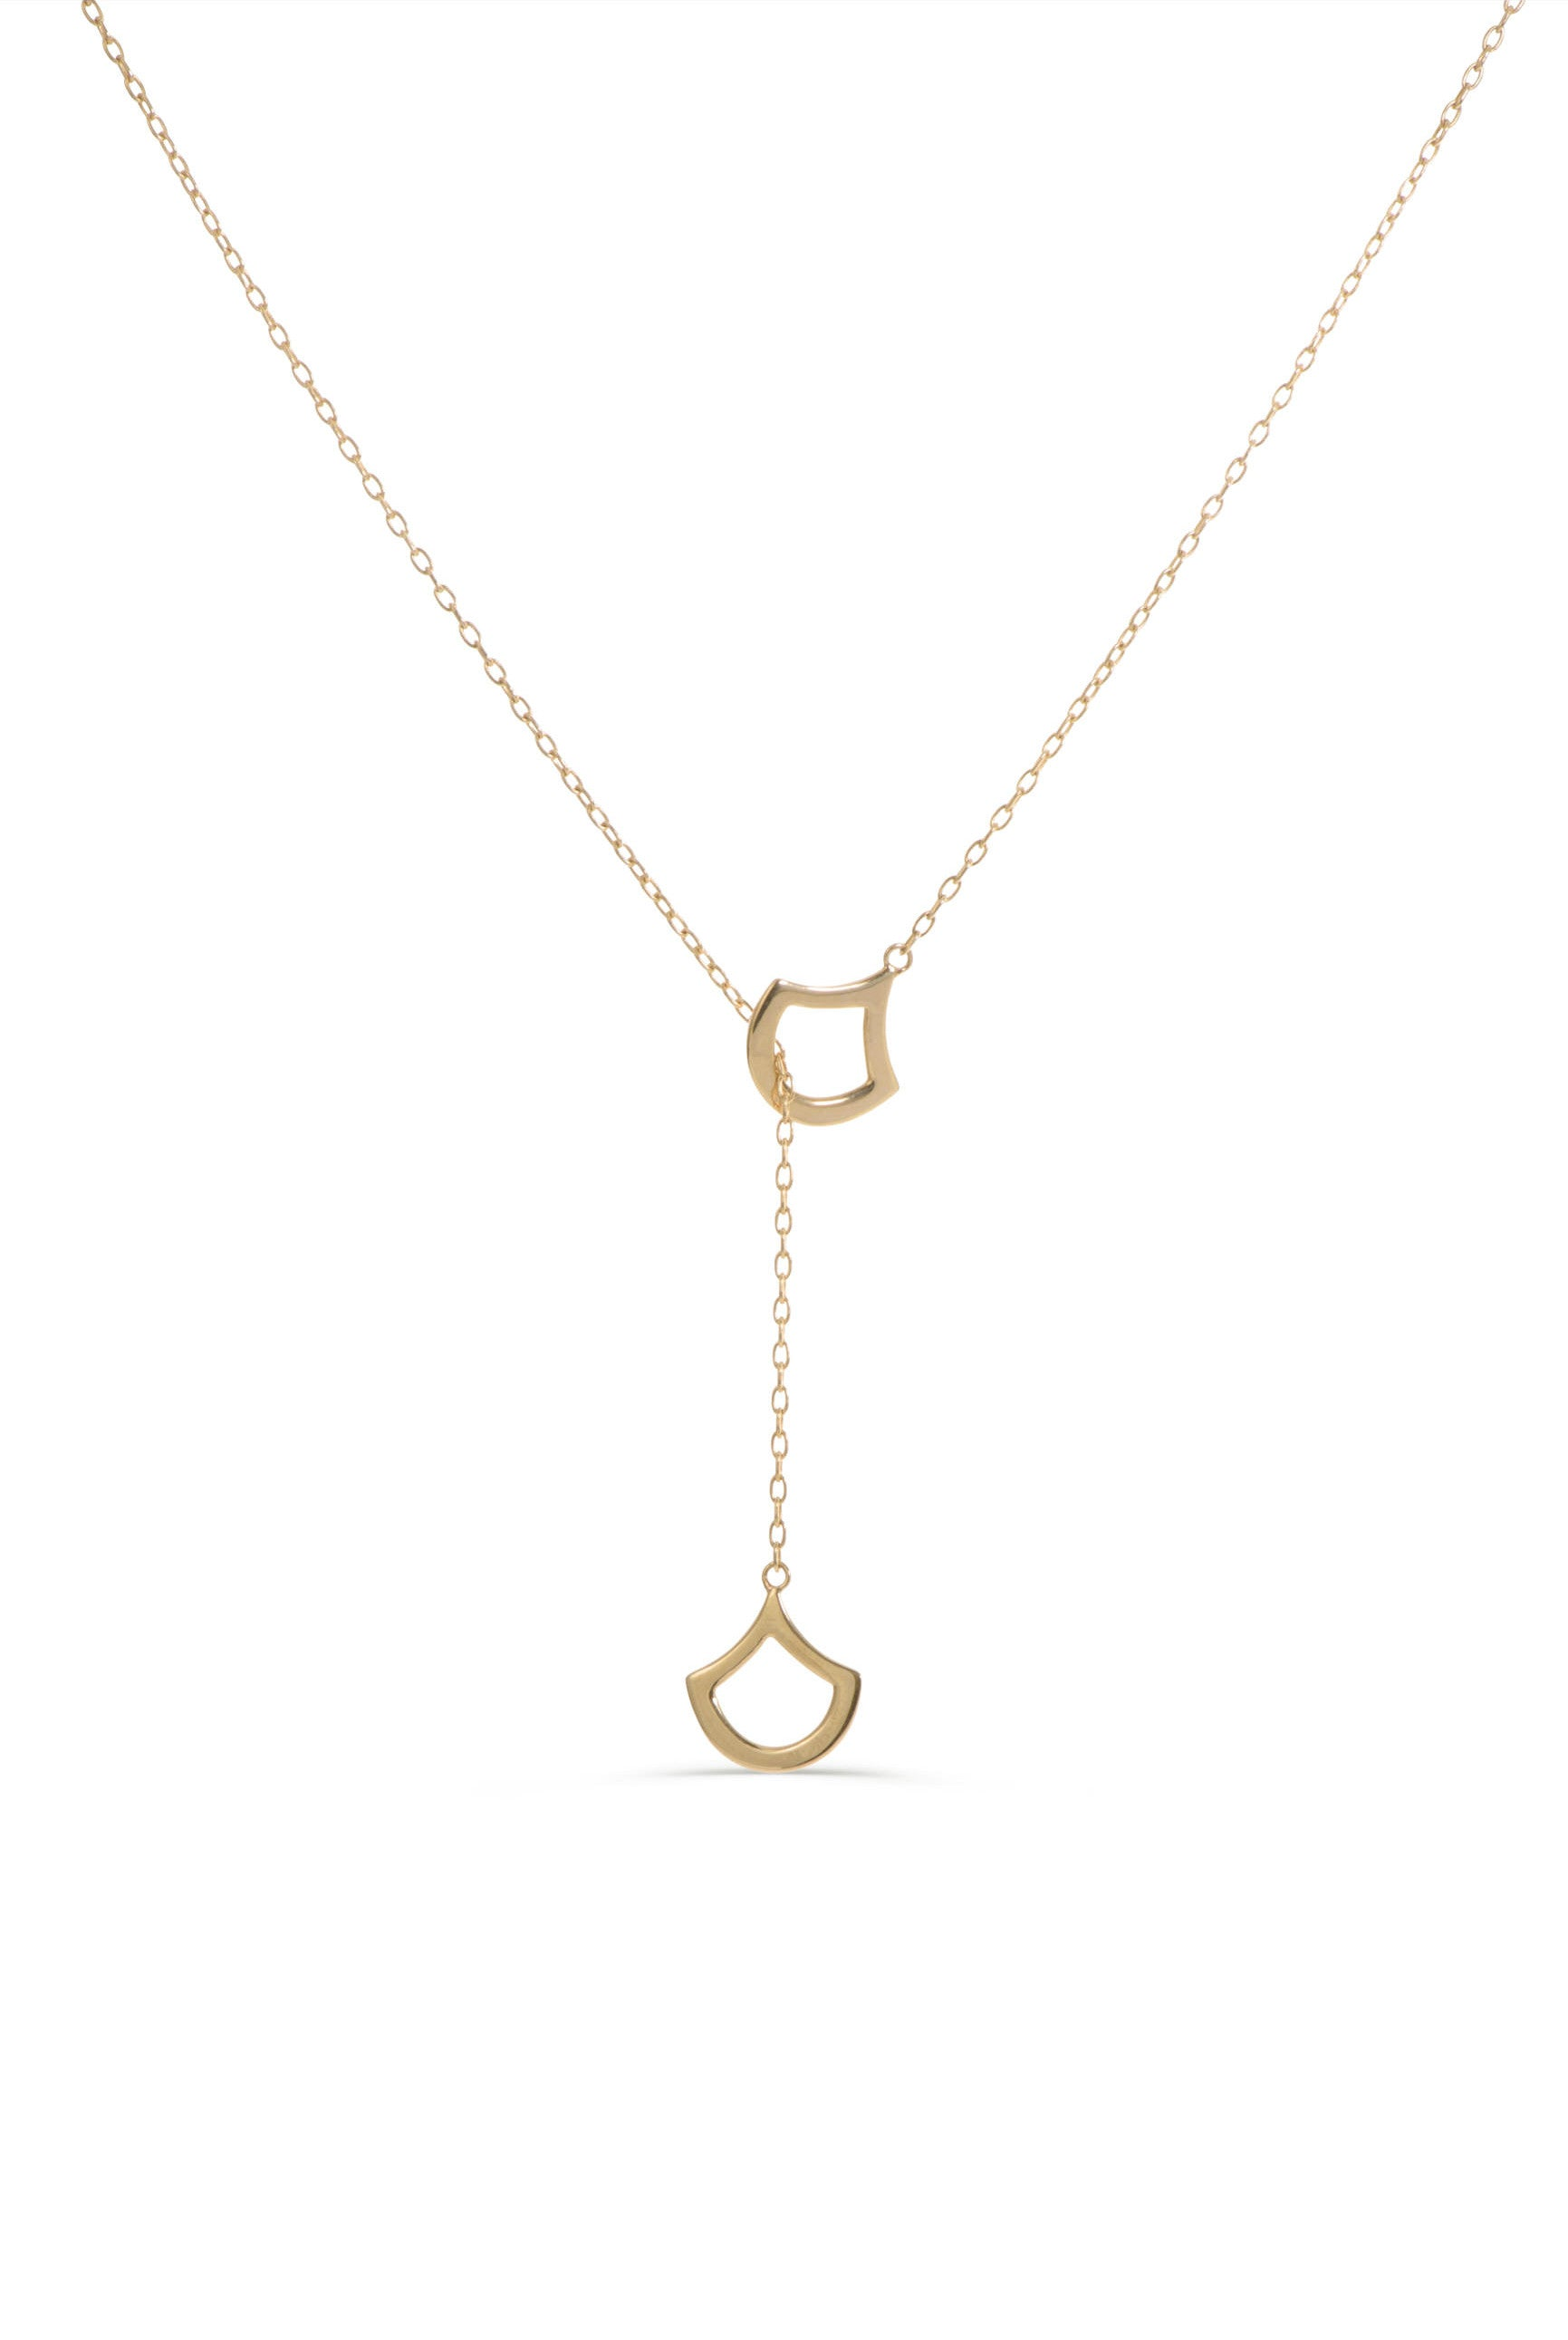 Adjustable lariat necklace 14 KT Gold